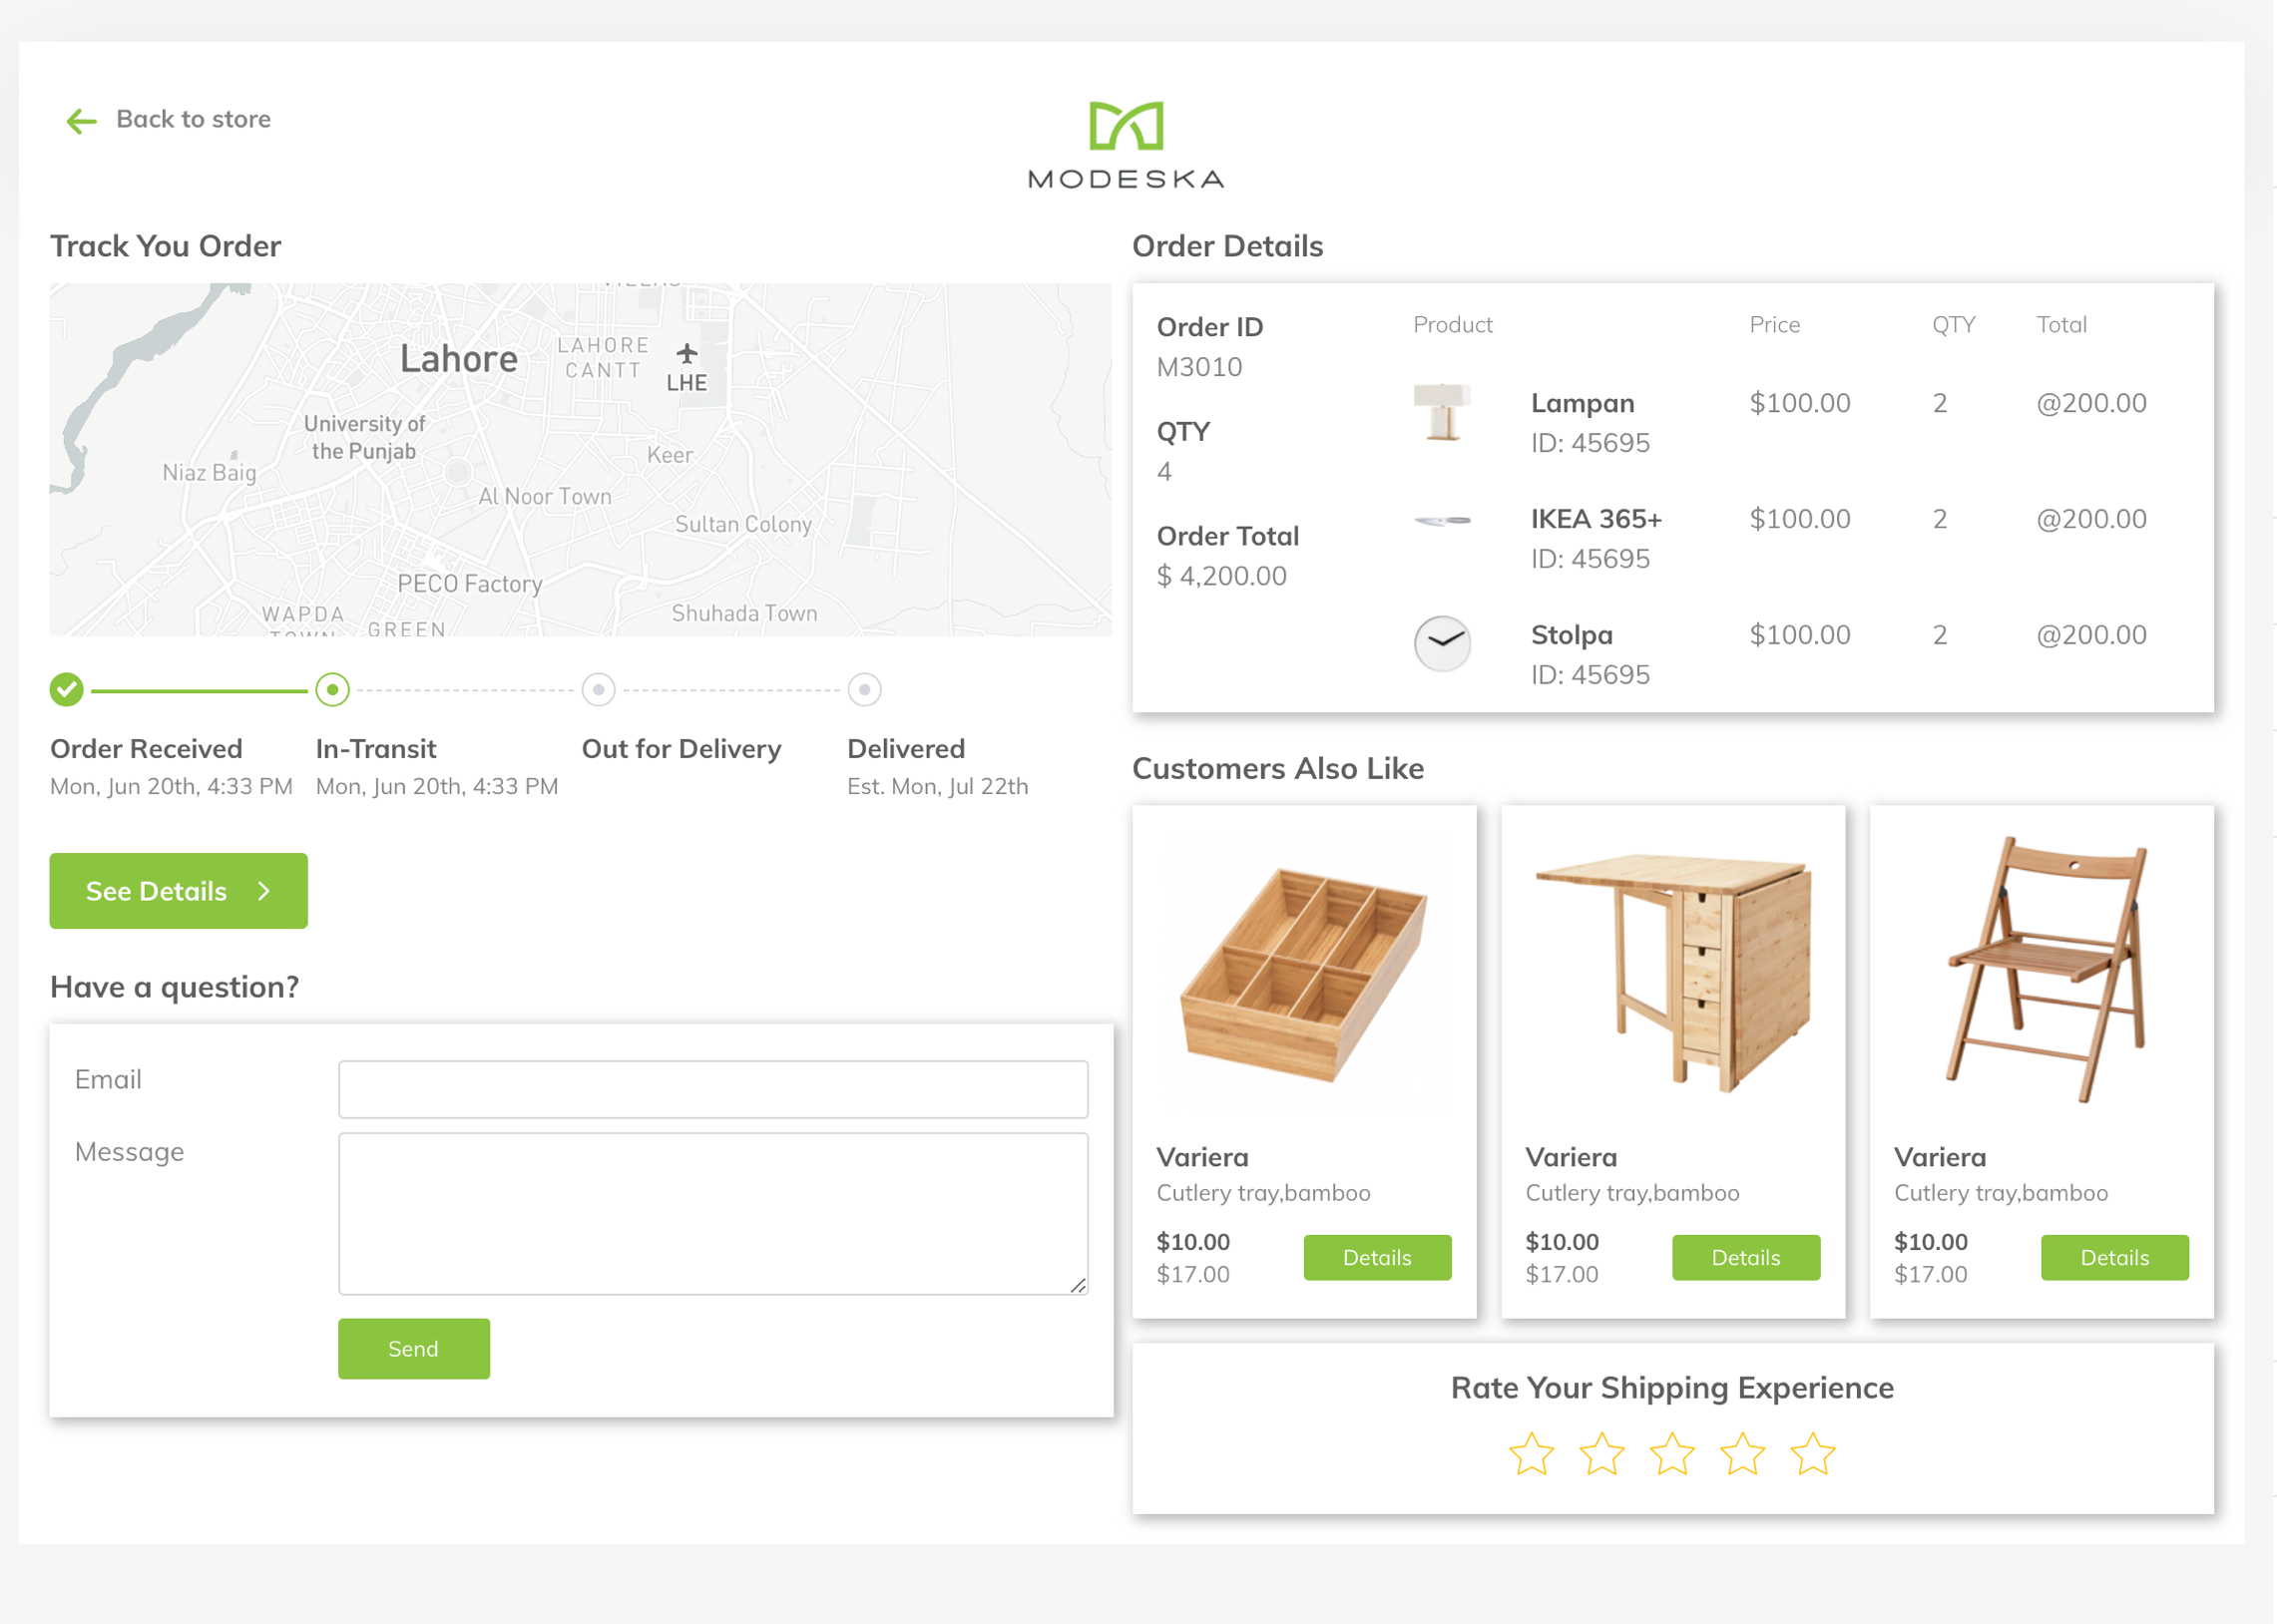 Non-branded order tracking page